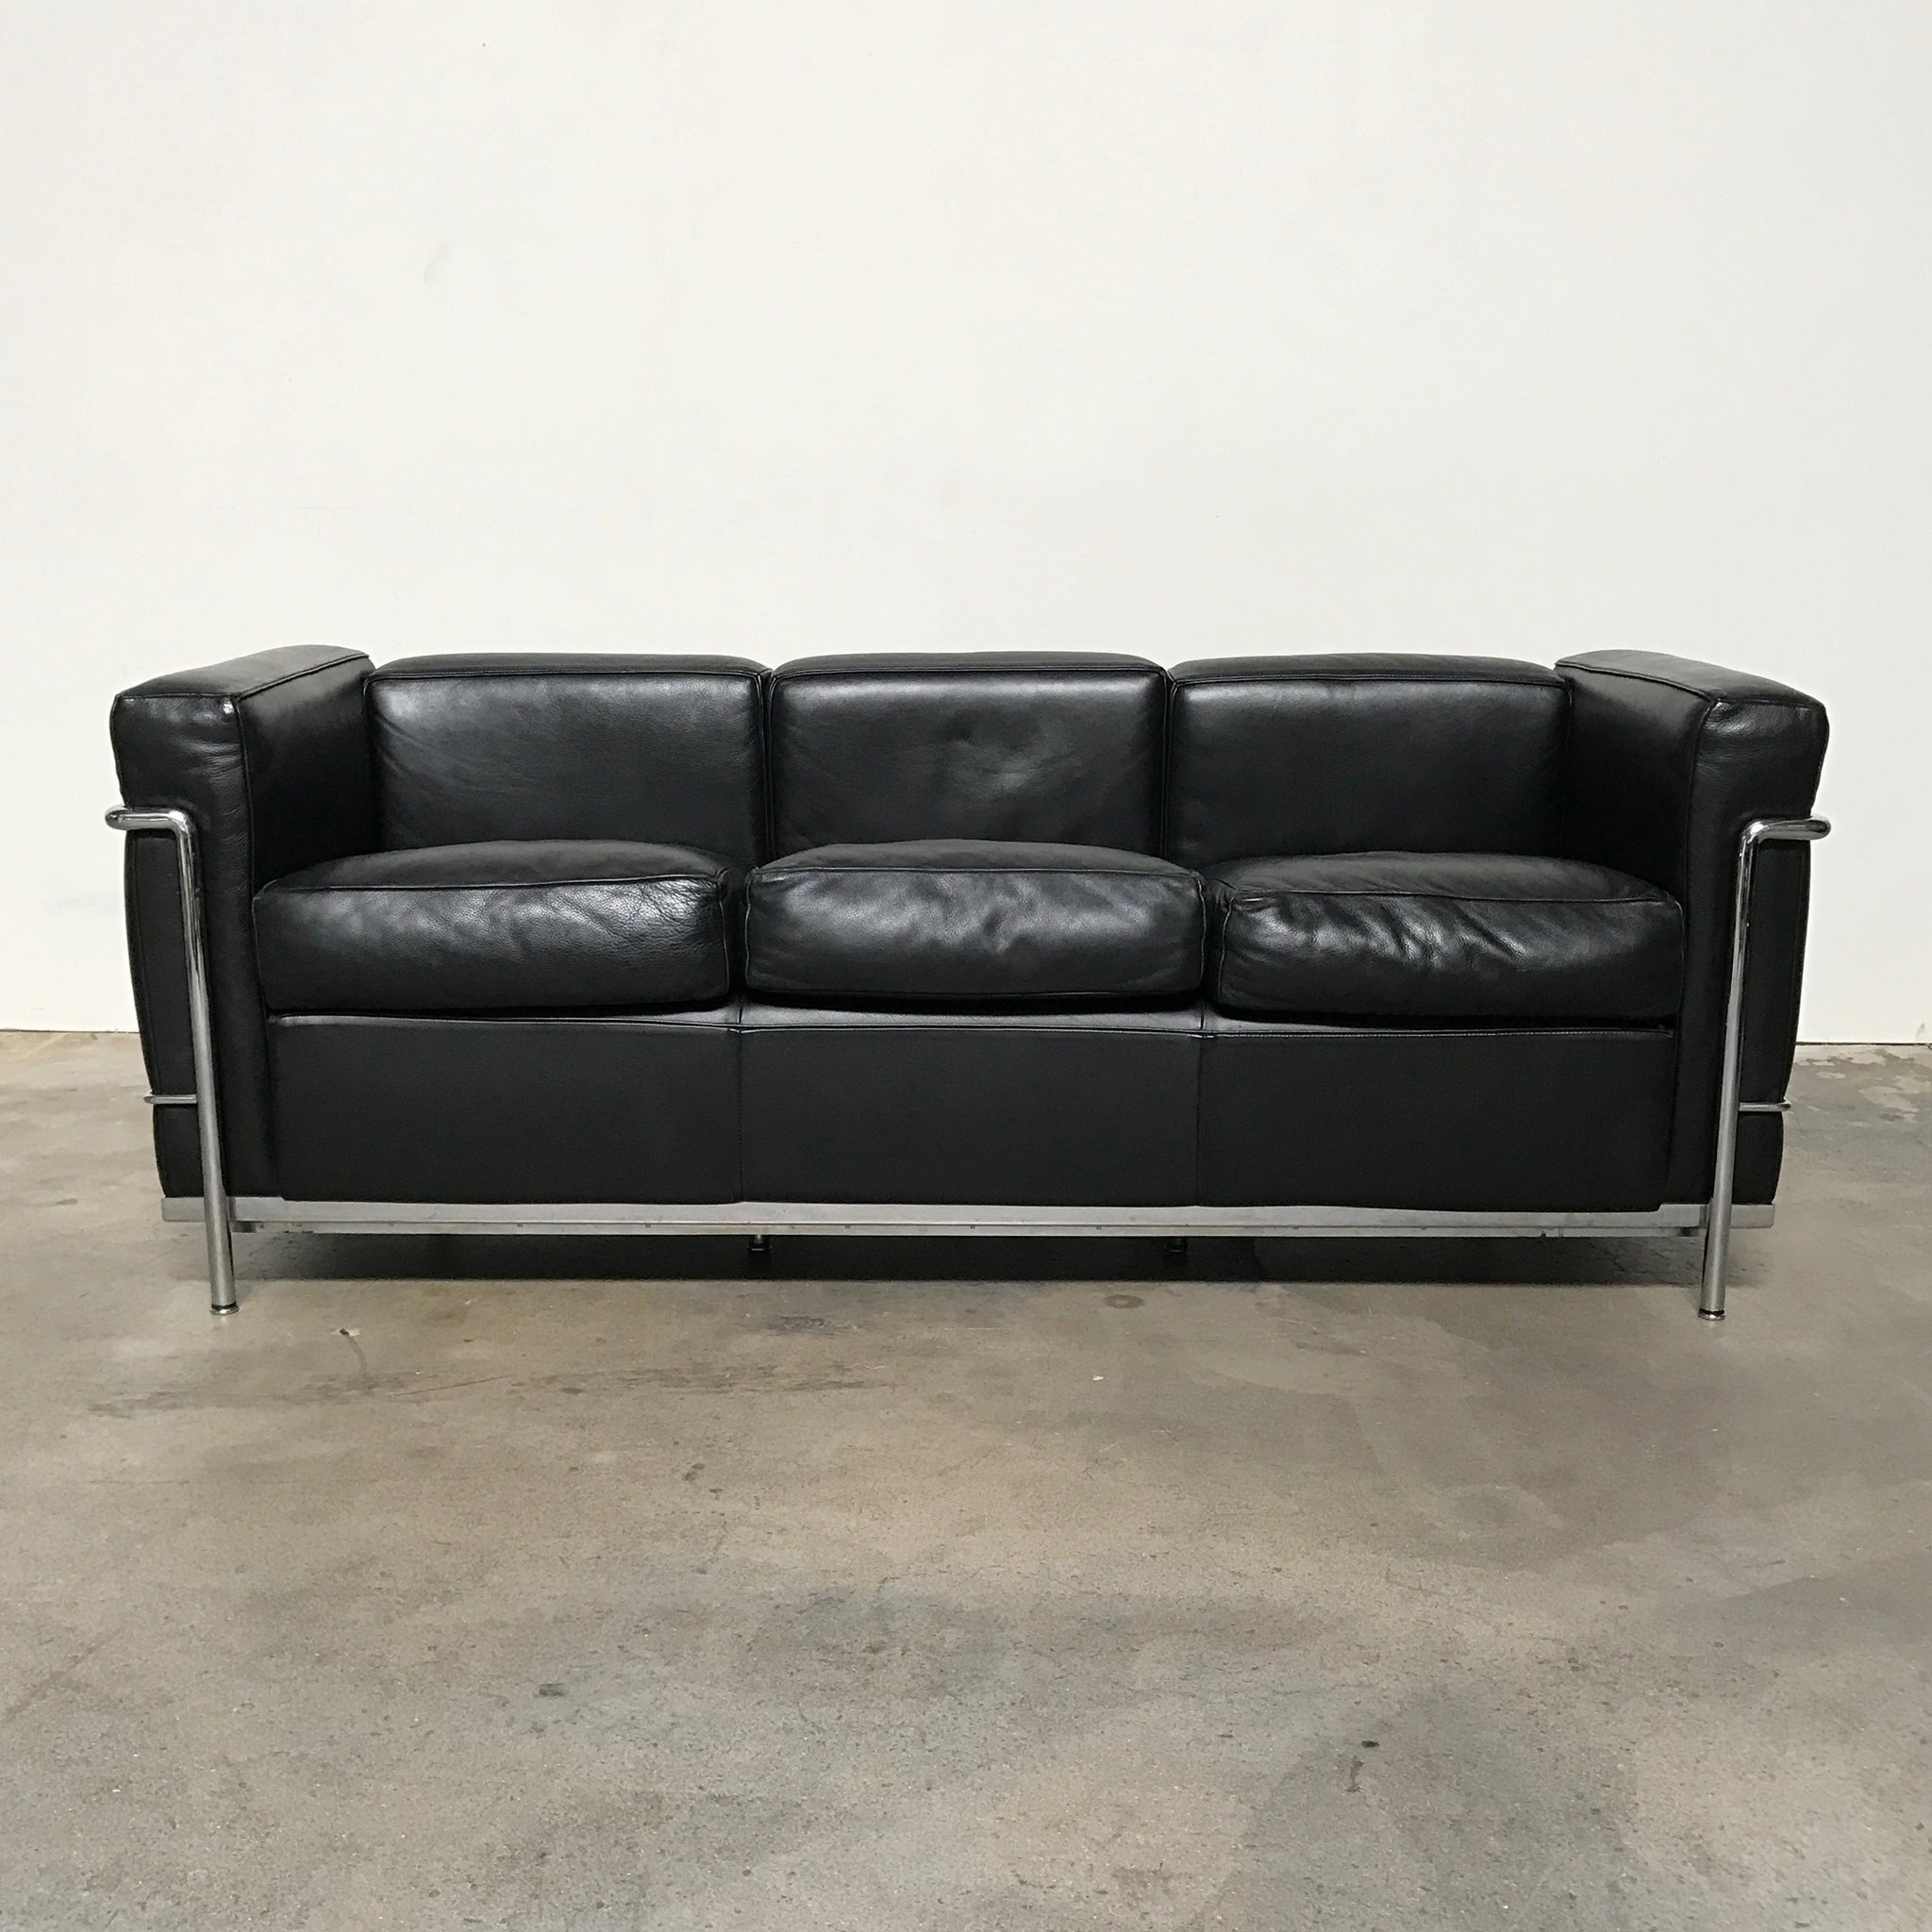 https://cdn.shopify.com/s/files/1/0581/8153/products/Modern_Resale_Used_Cassina_LC2_Petit_Modele_3_Seat_Sofa_Le_Corbusier_4_2048x.jpg?v=1500573866